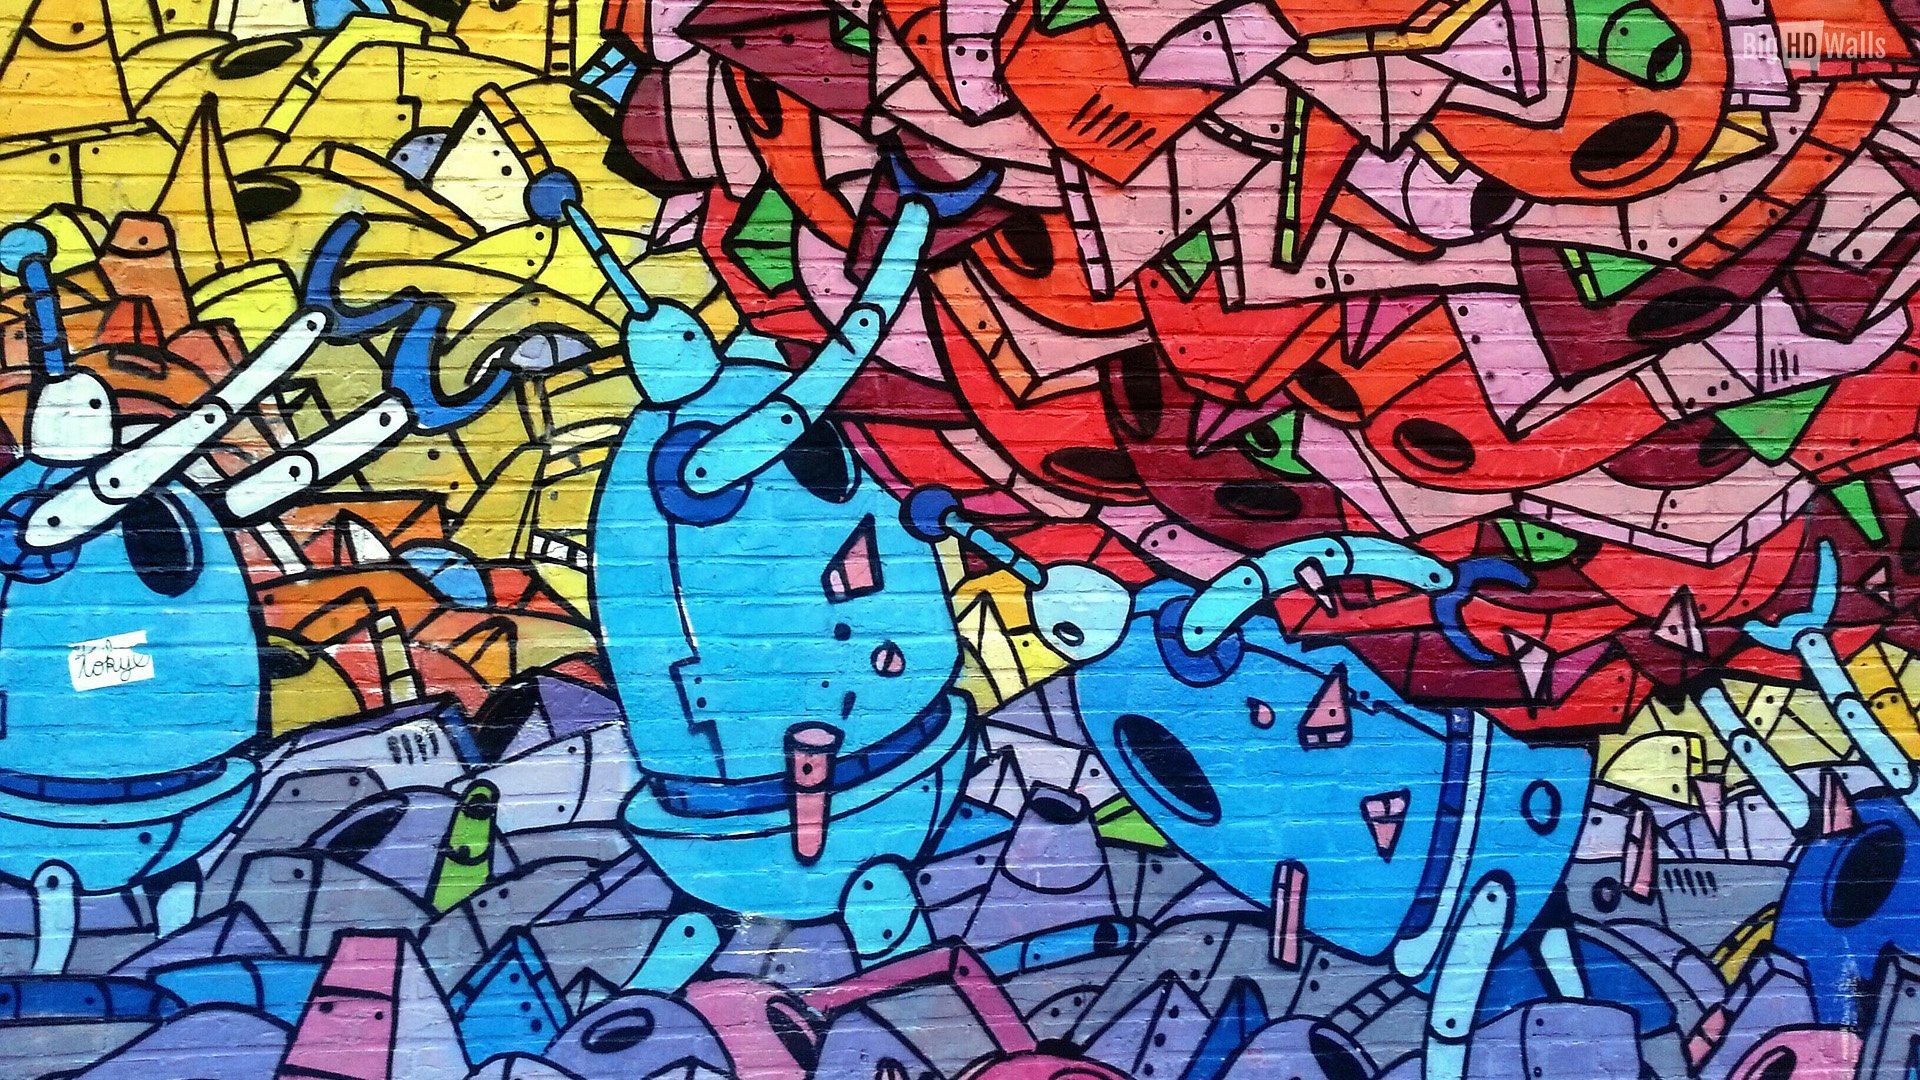 Abstract Graffiti Wallpaper 1920x1080